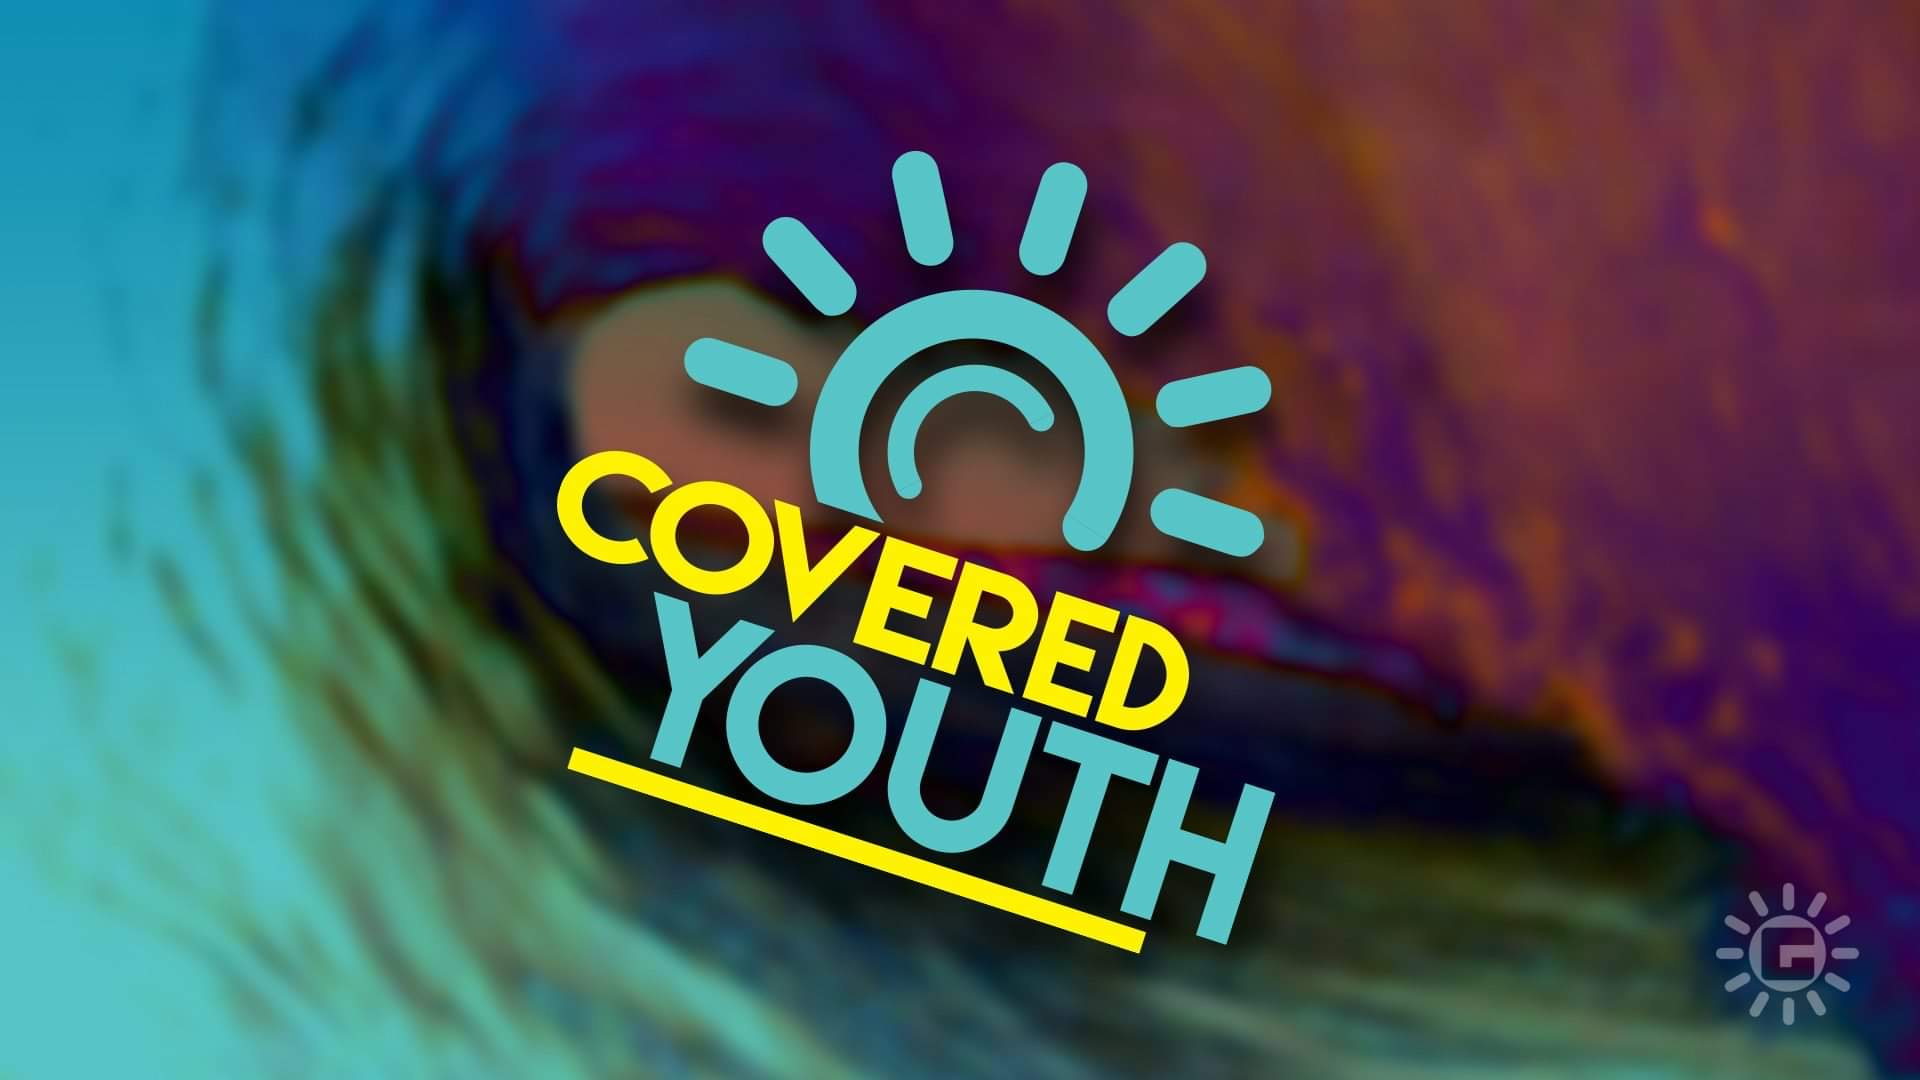 covered youth 1